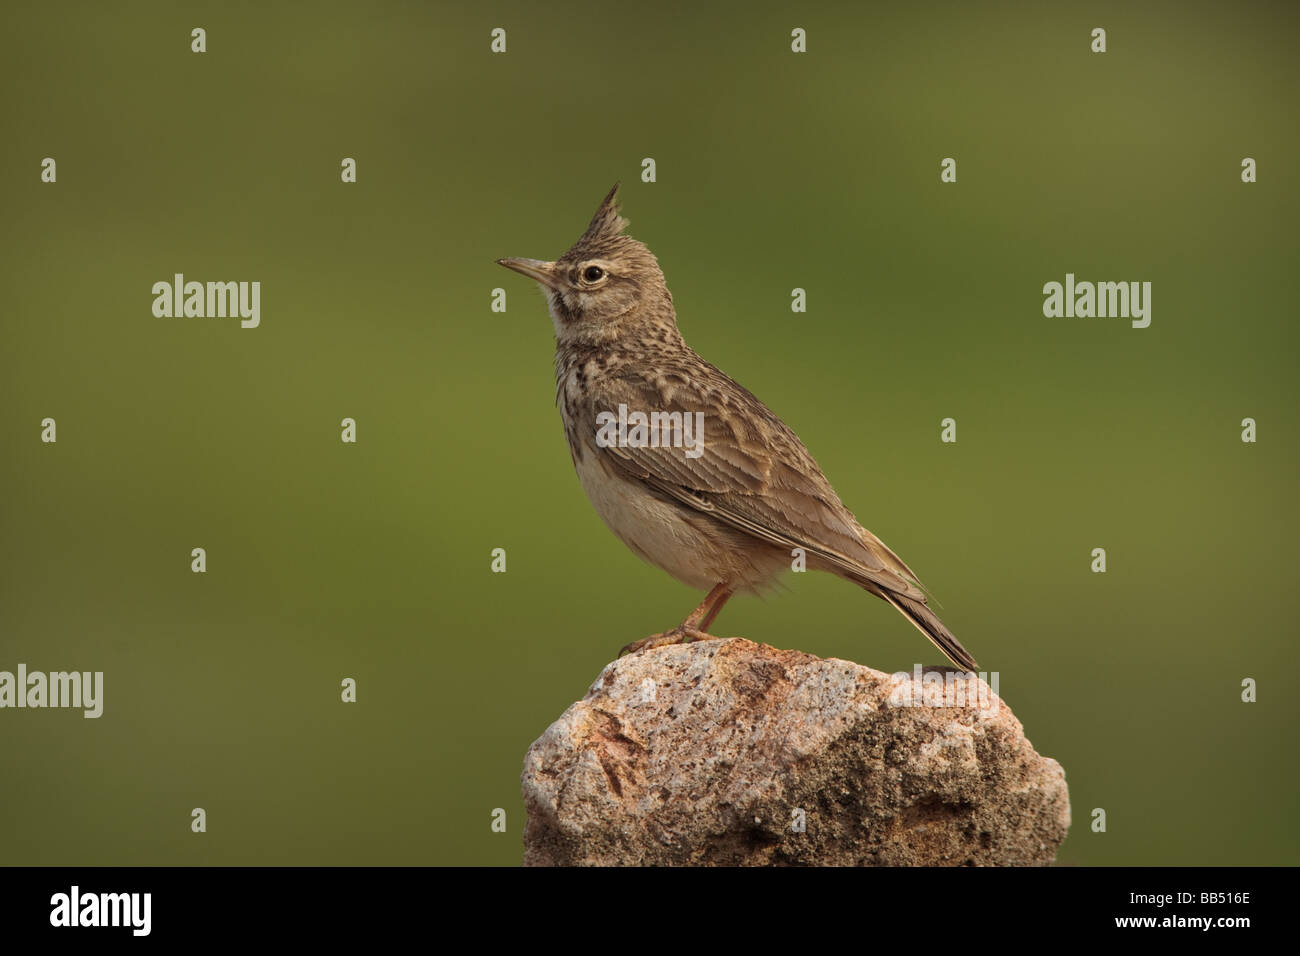 Crested Lark (Galerida cristata) perched on a rock, Lesvos Greece Stock Photo